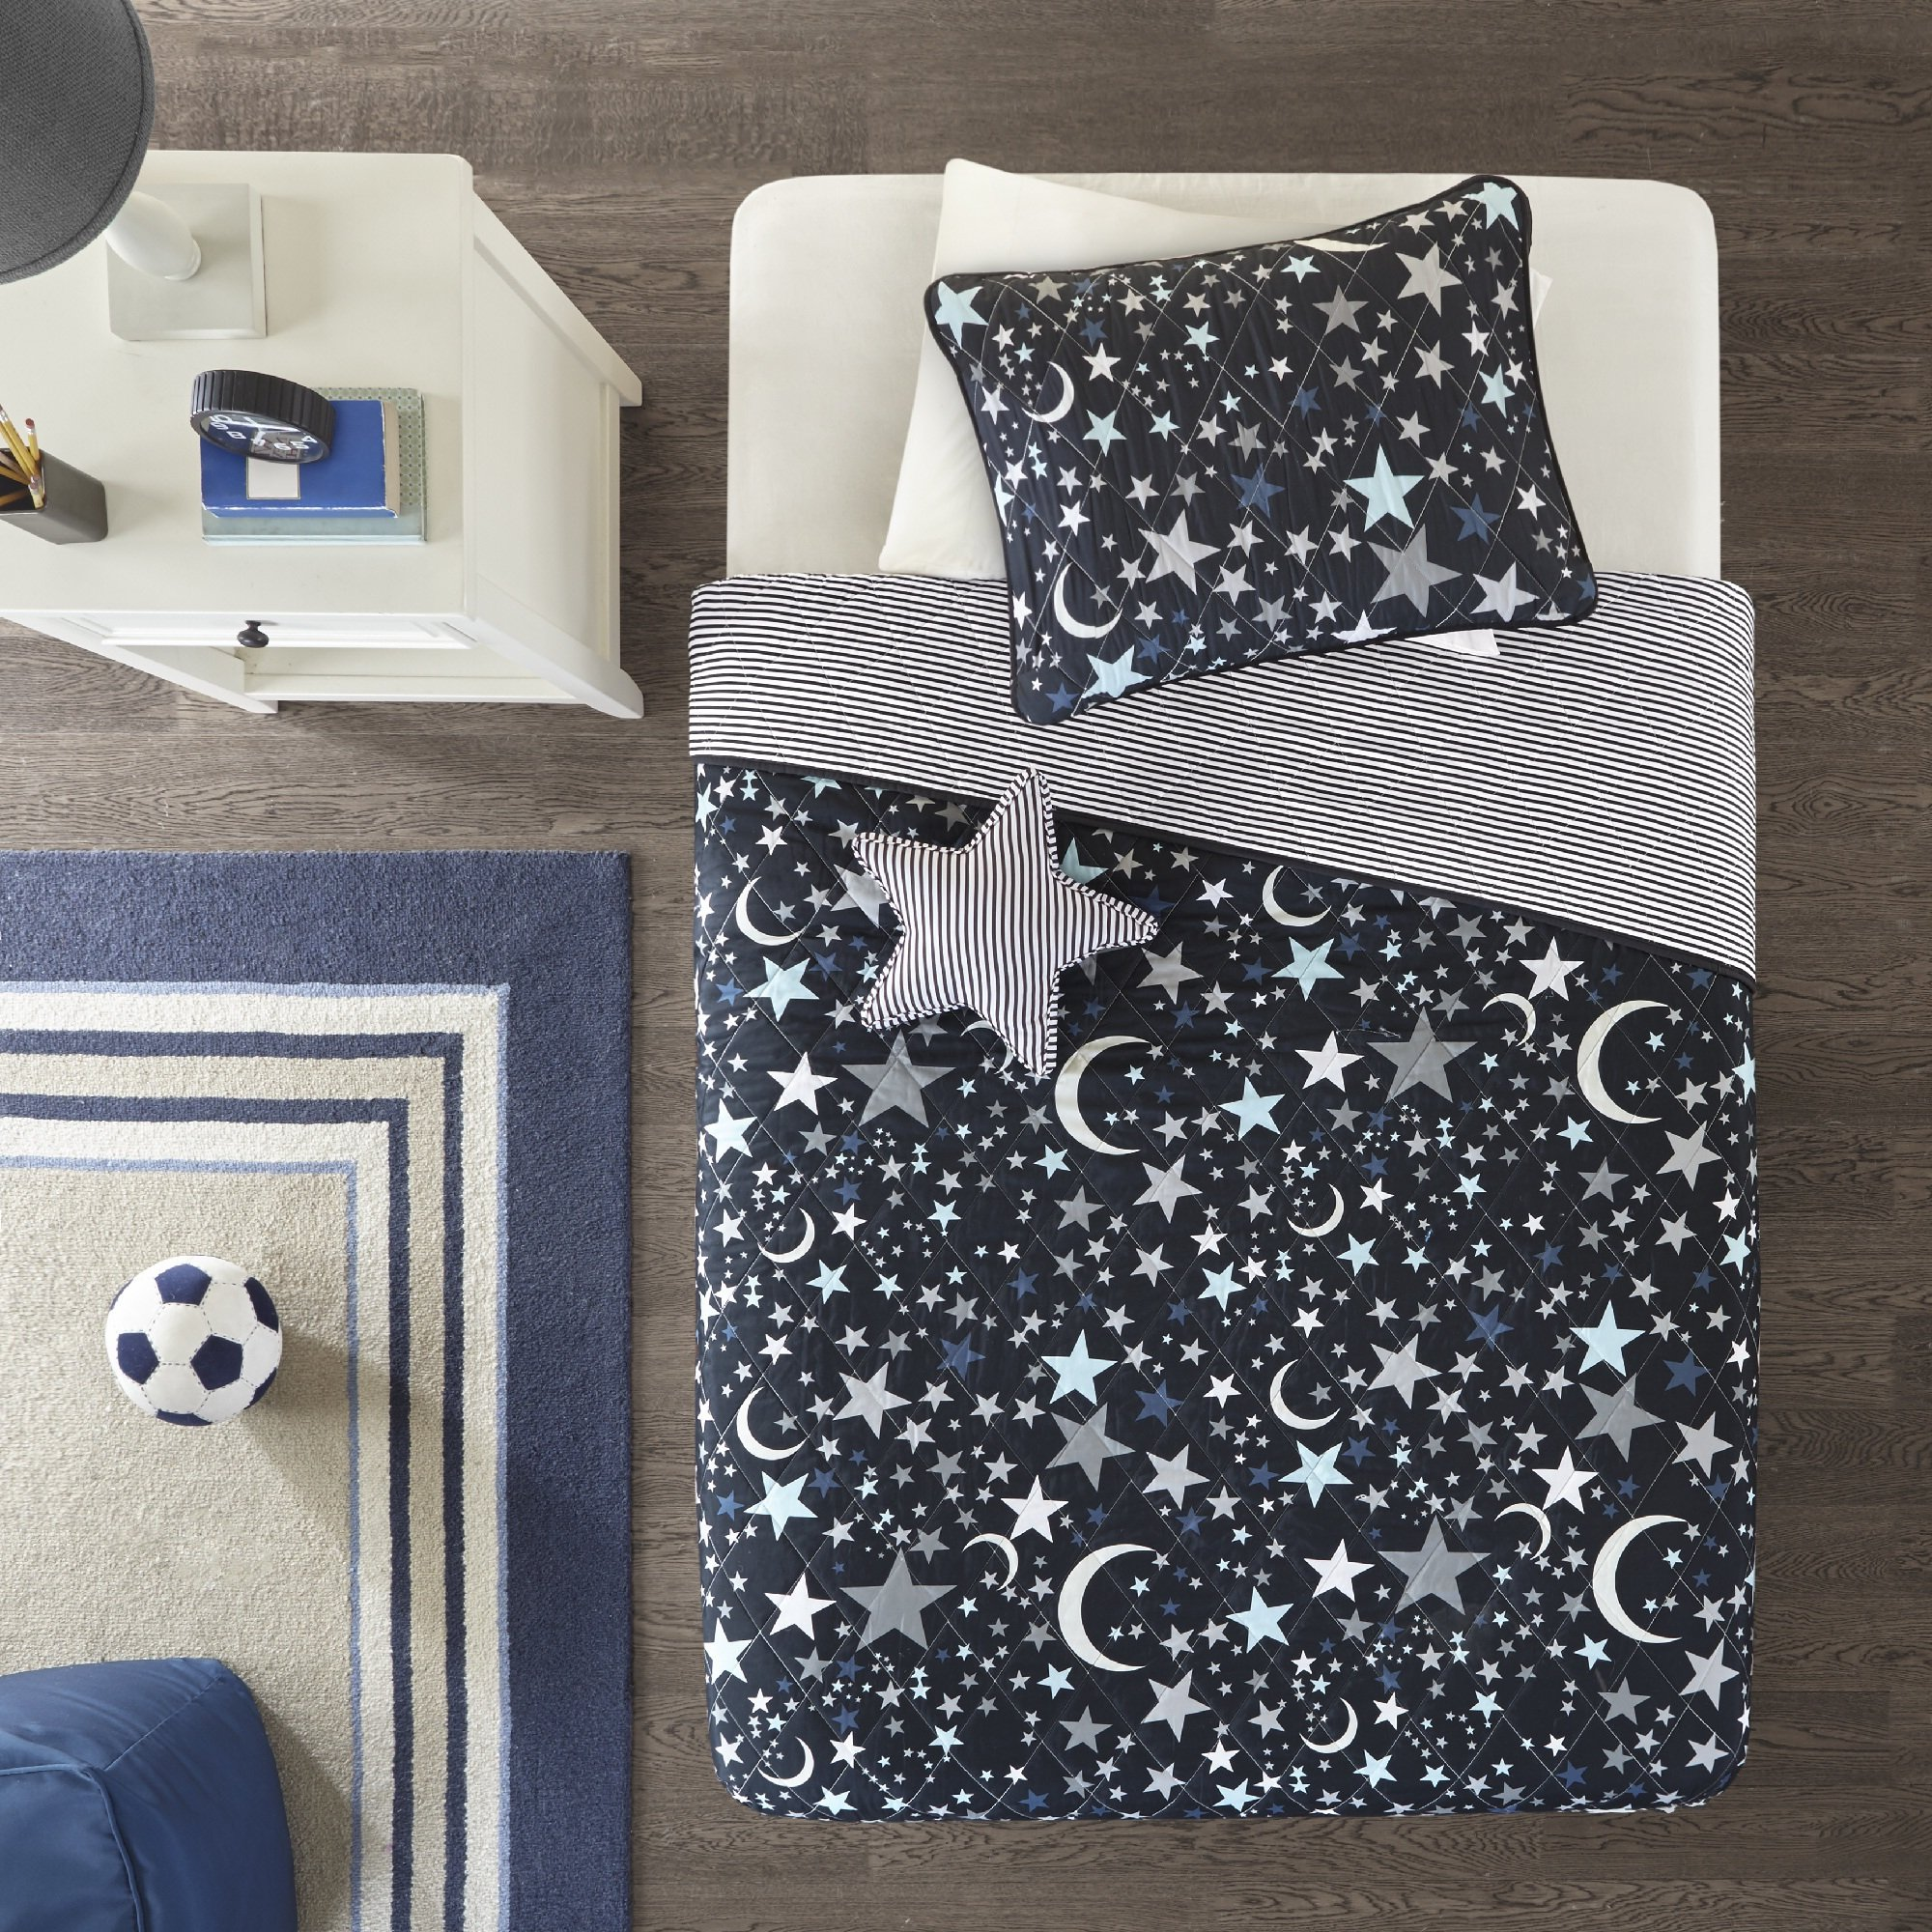 Dazzling, Ultra- Soft Stylish Kids Shooting Star Charcoal Printed Coverlet Set, Array of Stars and Moons in Shades of Grey, White, and Blue, Scattered Across the Charcoal Ground, Twin (FULL / QUEEN)